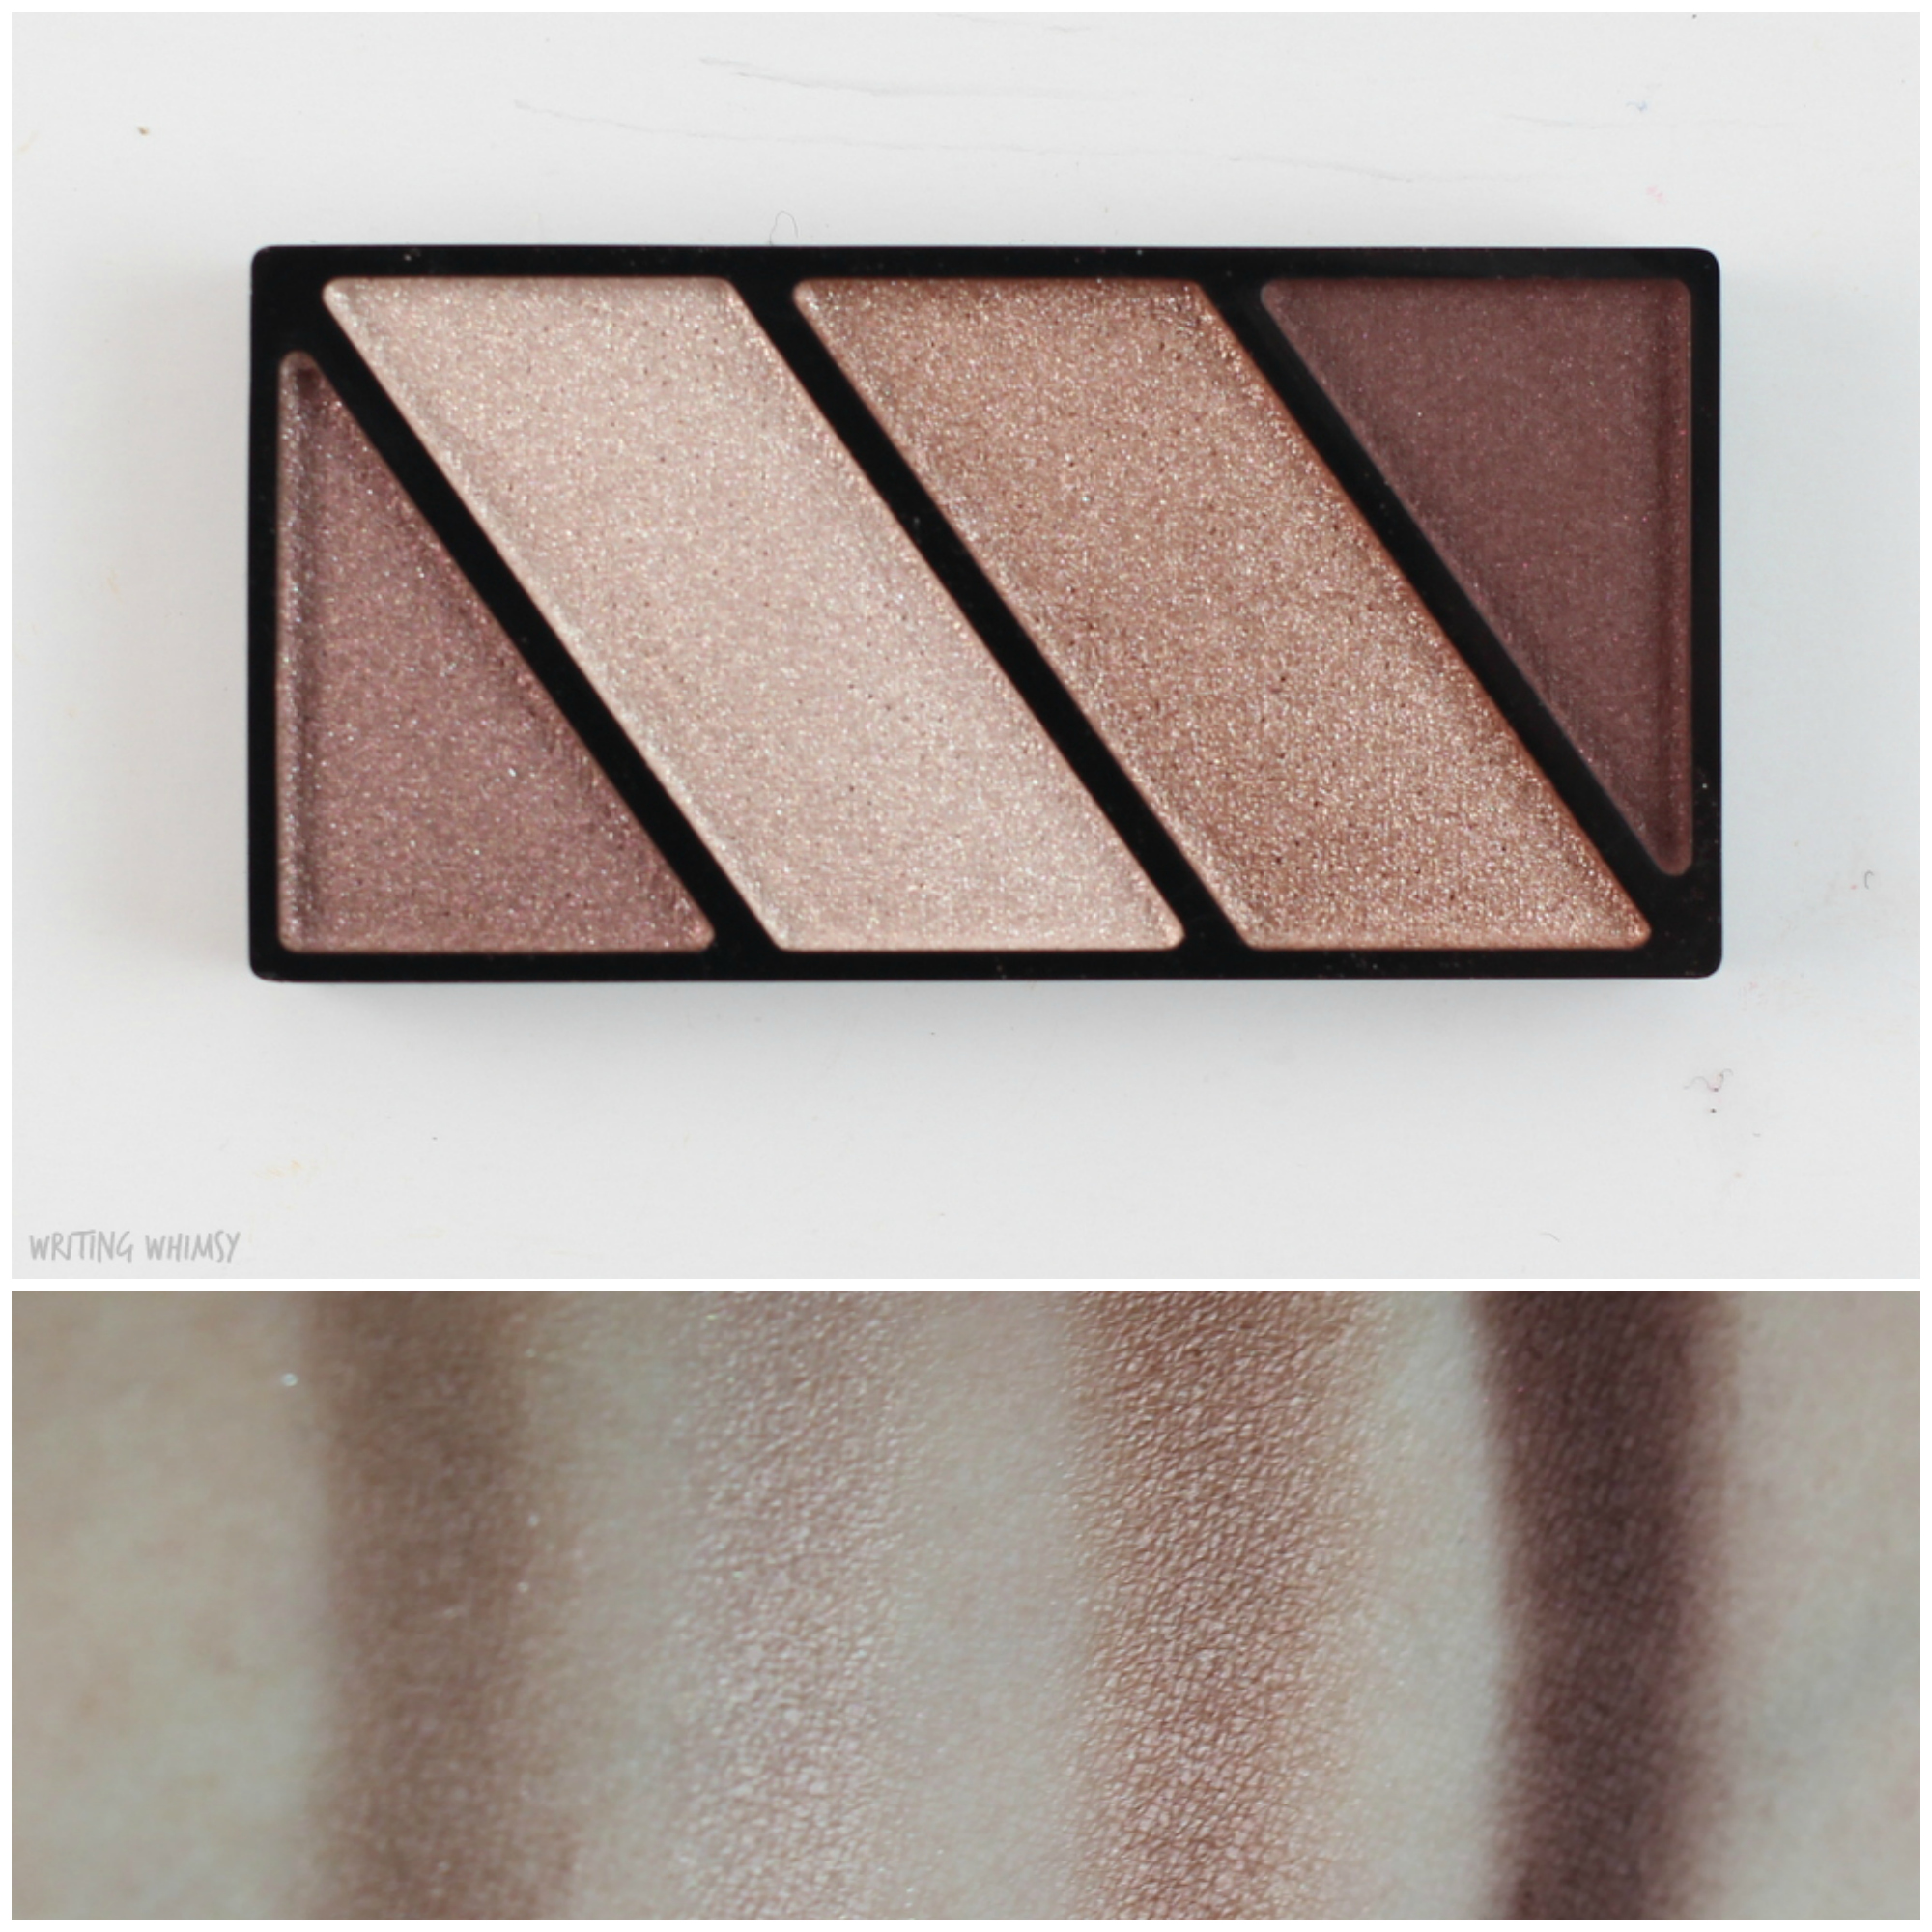 Mary Kay Mineral Eye Color Quads in Autumn Leaves and Sandstone Collage